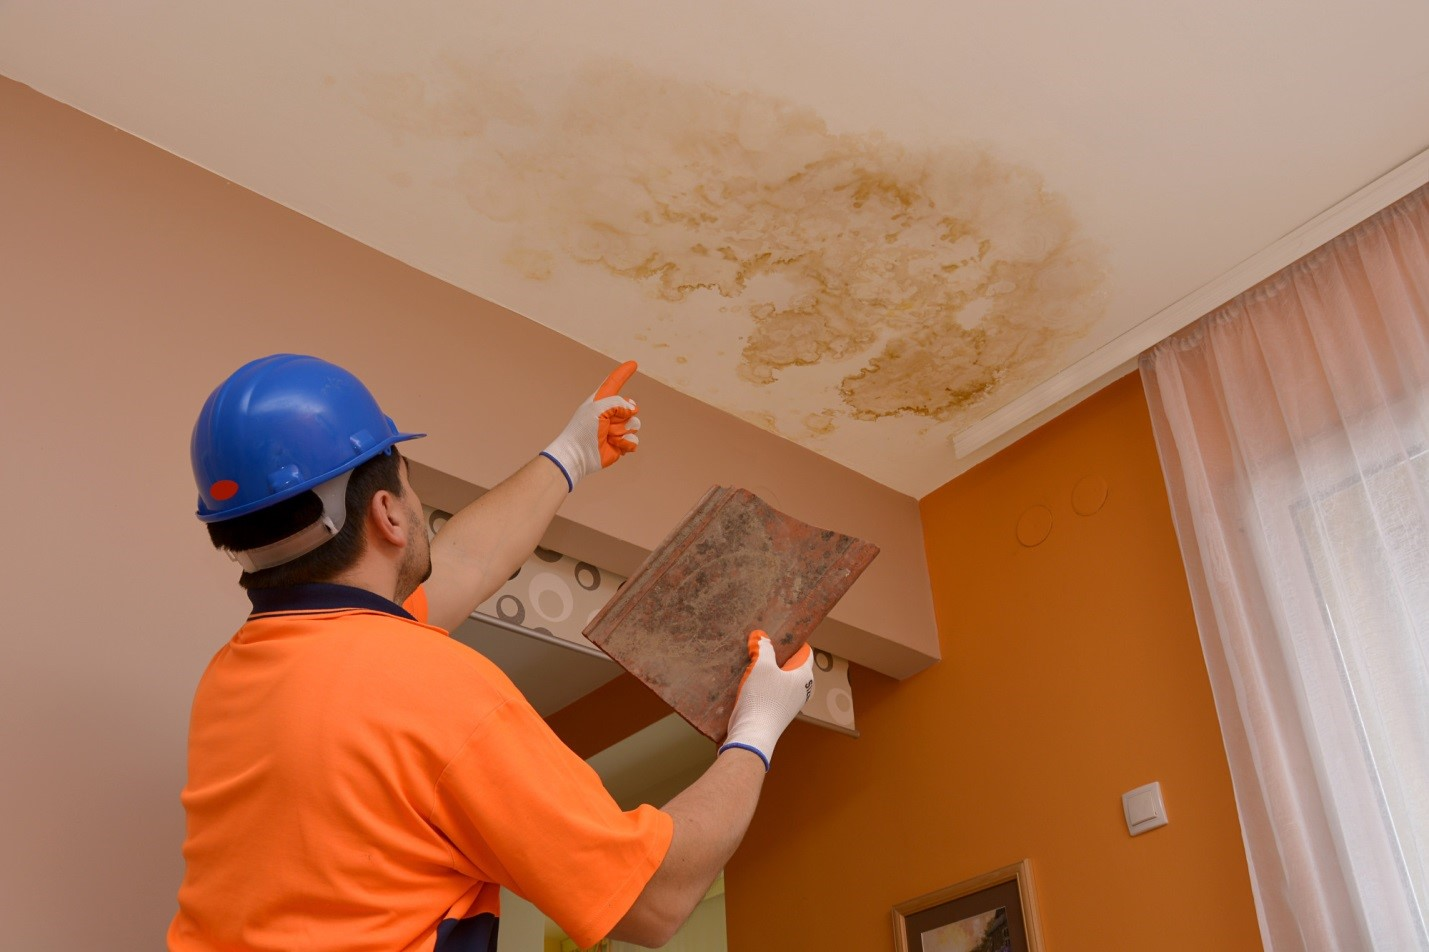 image - Finding a Roof Leak: 5 Tips for Homeowners on Detecting Roof Damage